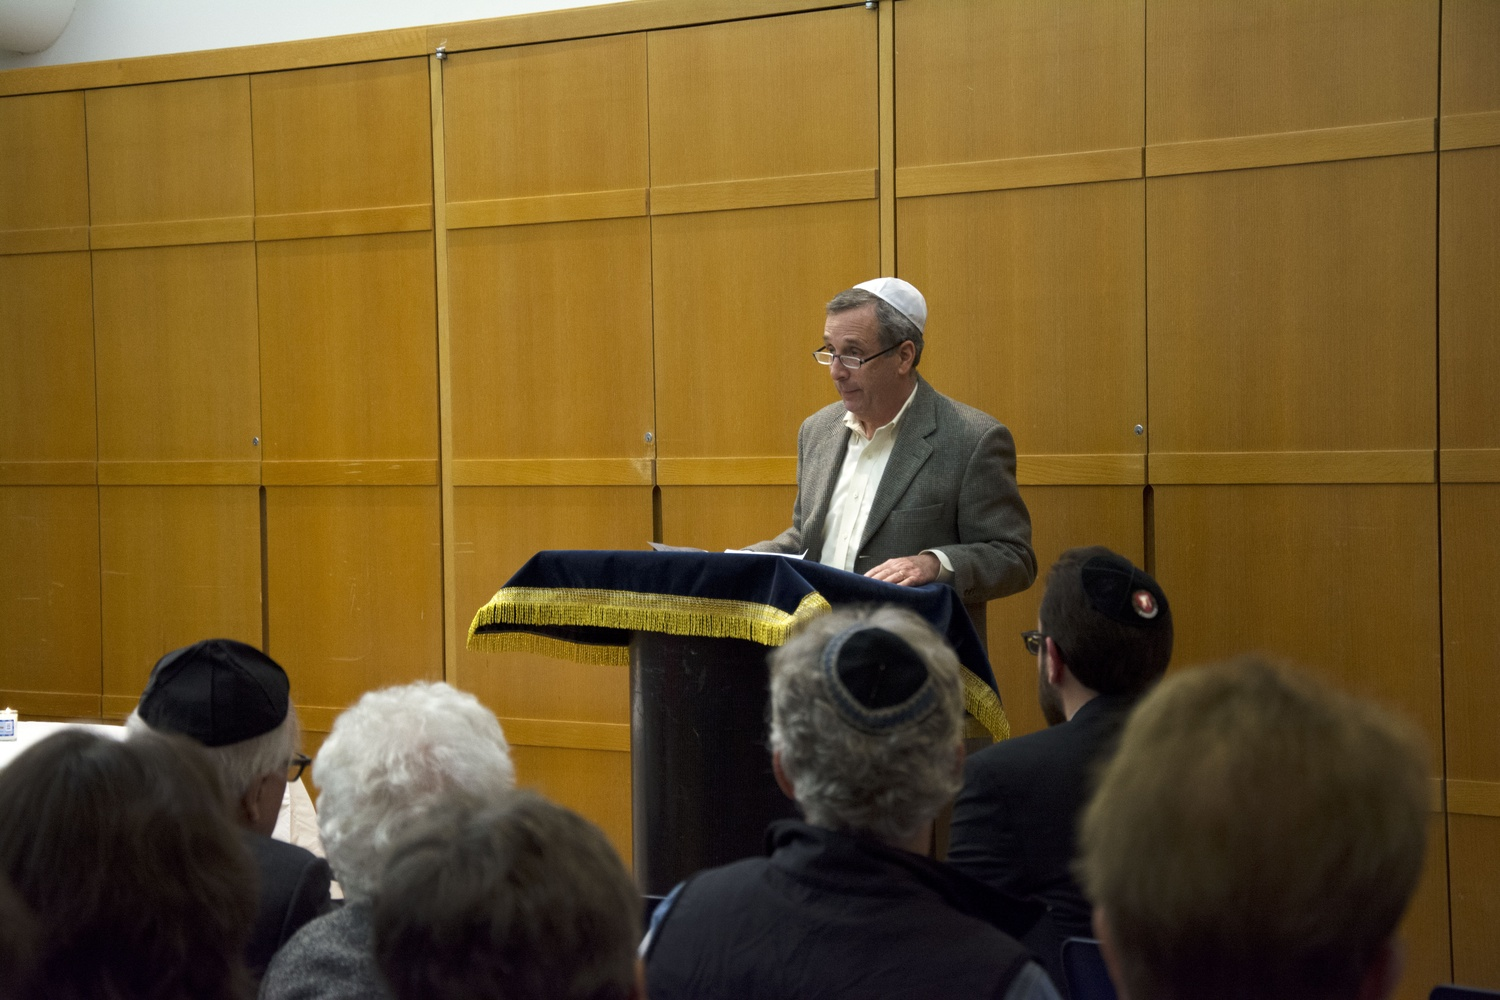 President Bacow speaks at the Tree of Life Synagogue Vigil at Harvard Hillel.